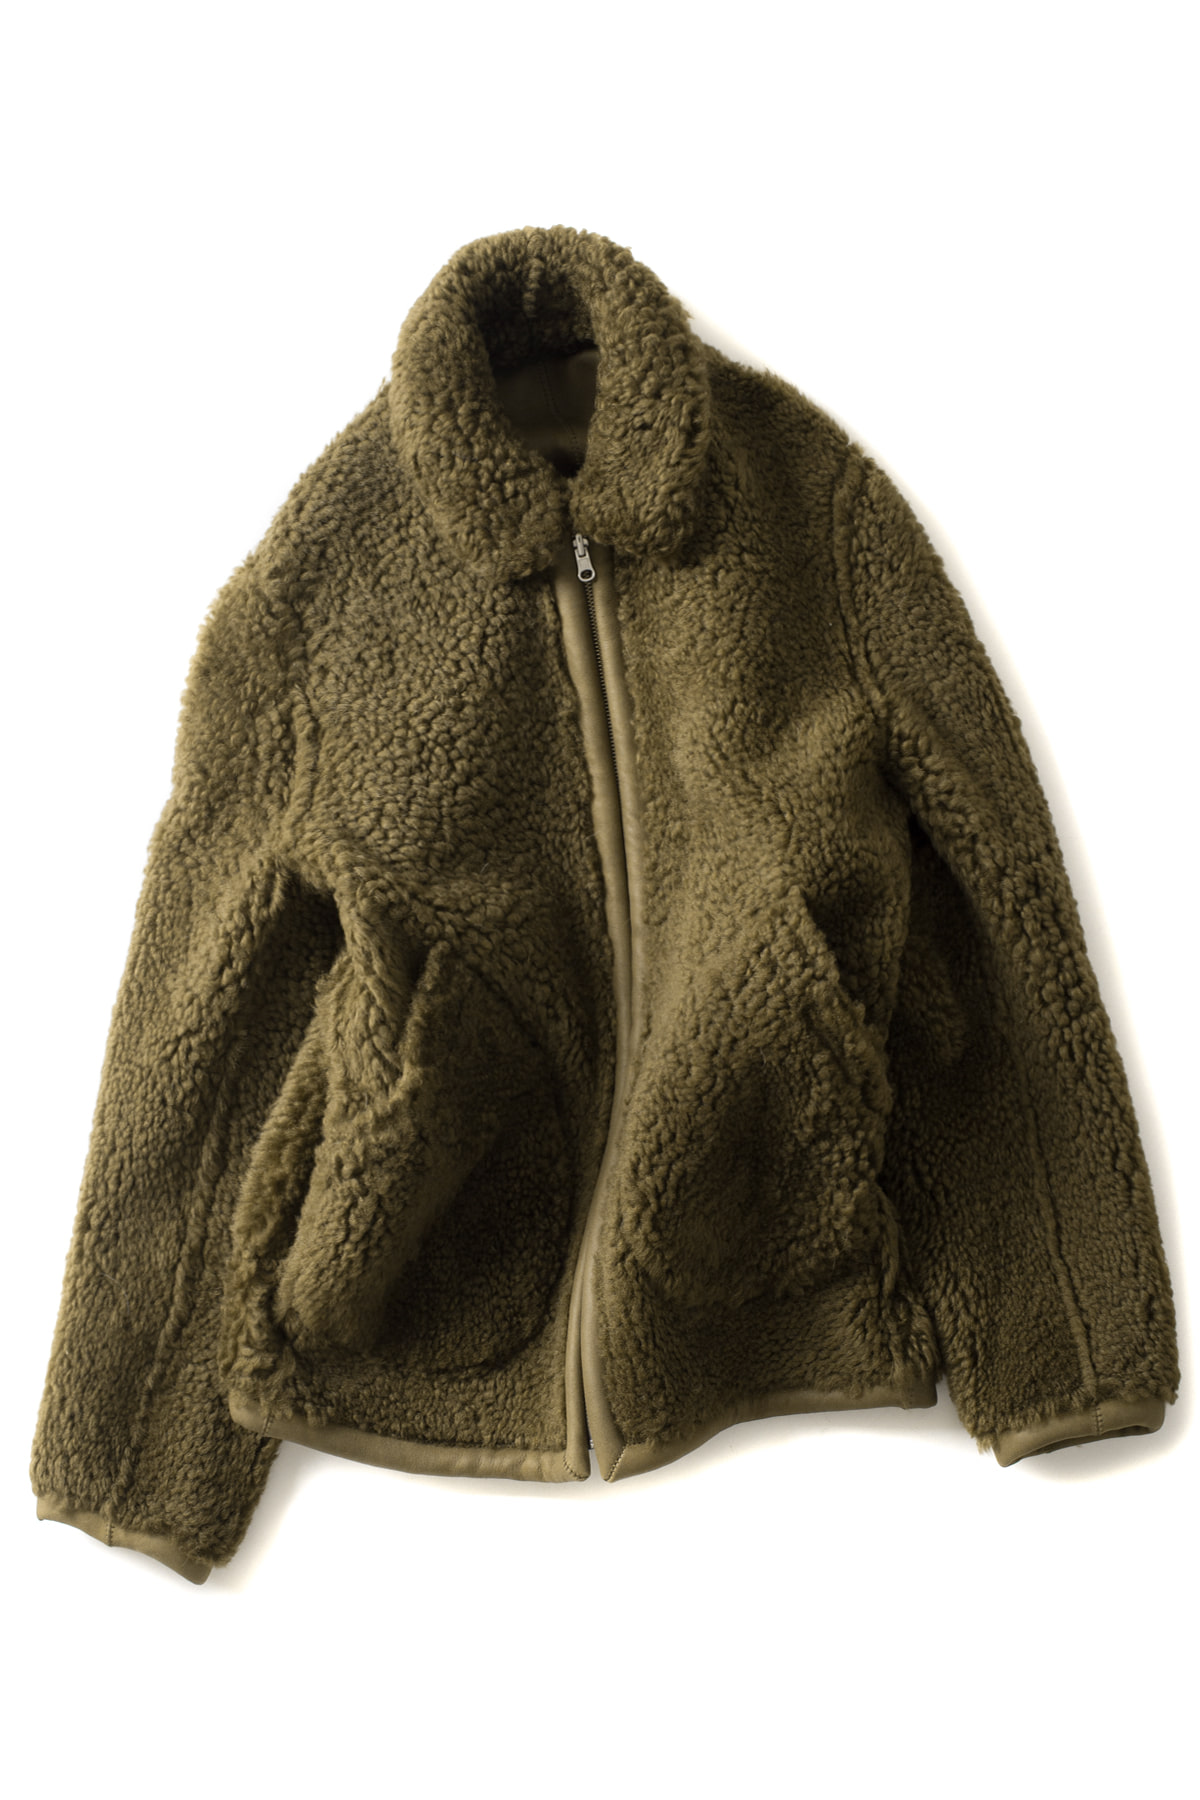 Sofie D'Hoore : Zipped Shearling Jacket (Khaki)